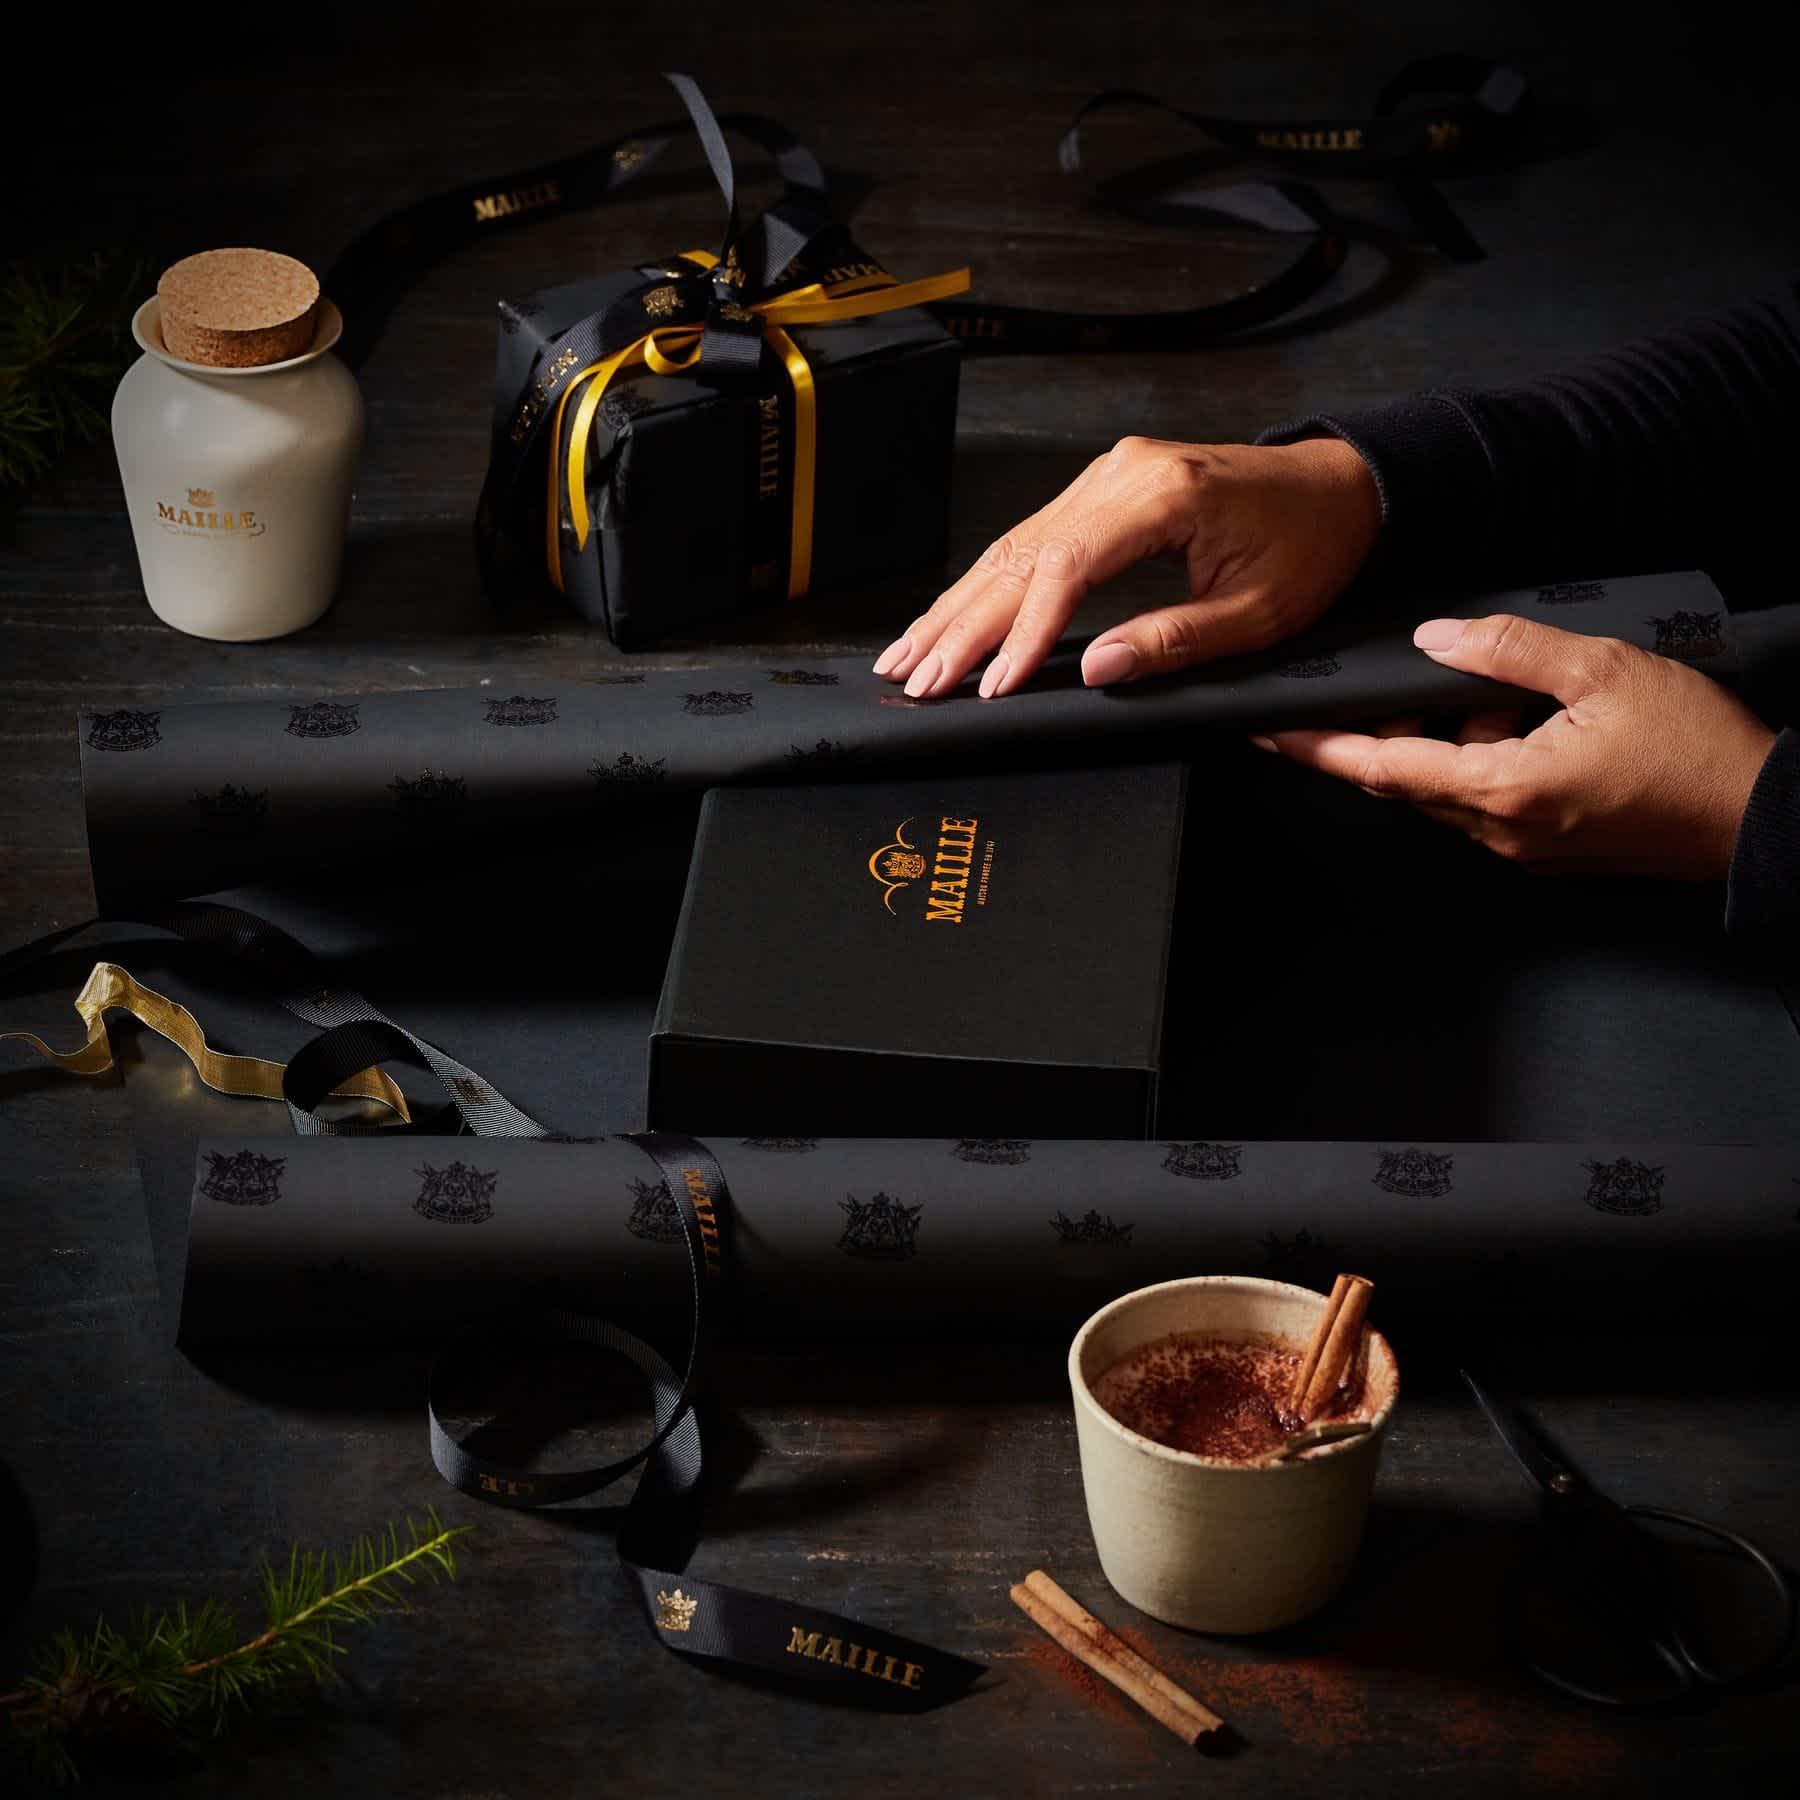 Maille cadeau gifting coffret